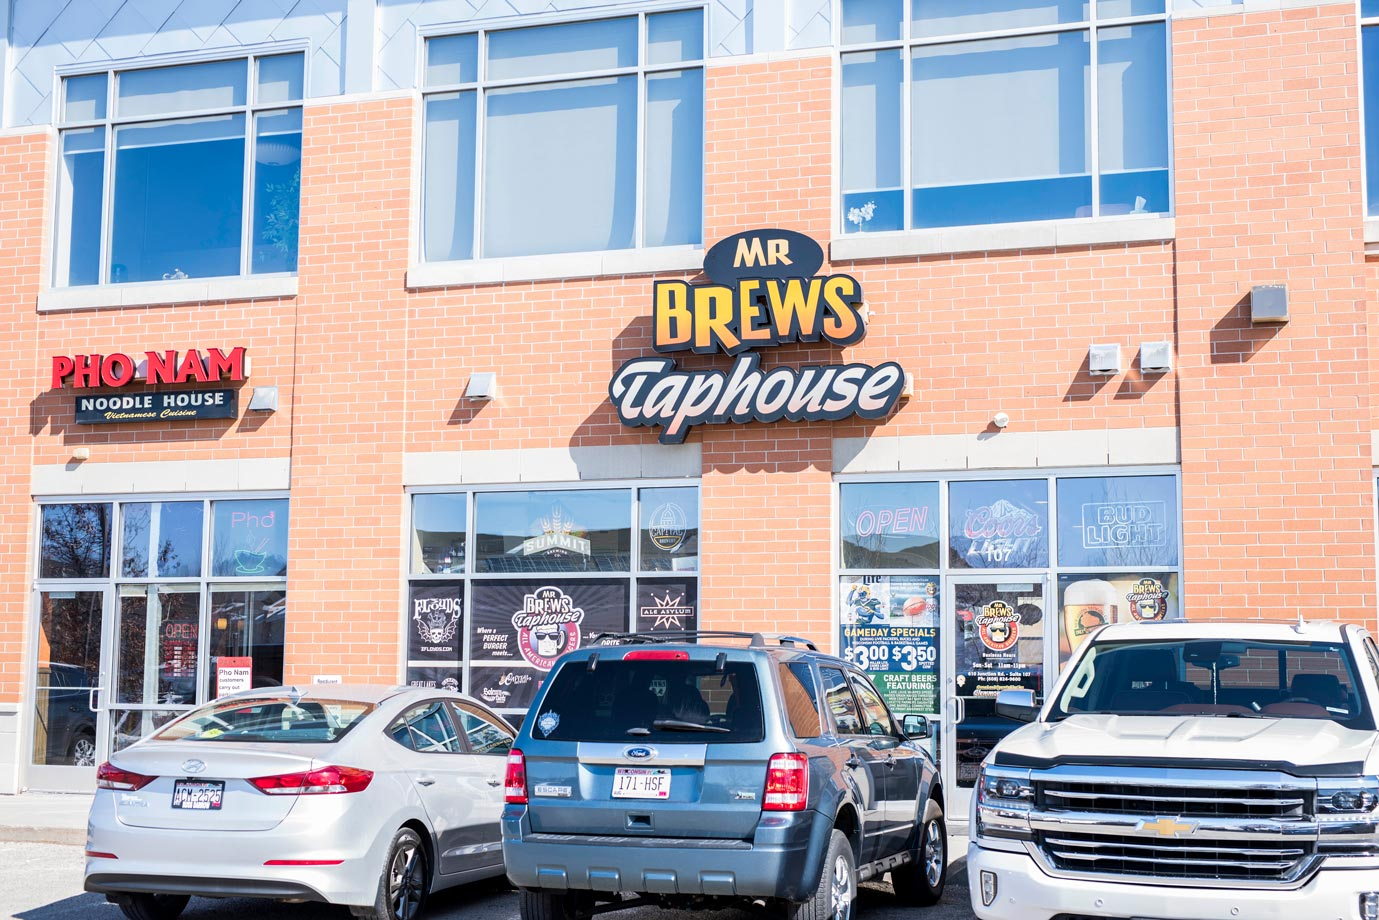 Mr Brews Taphouse, exterior